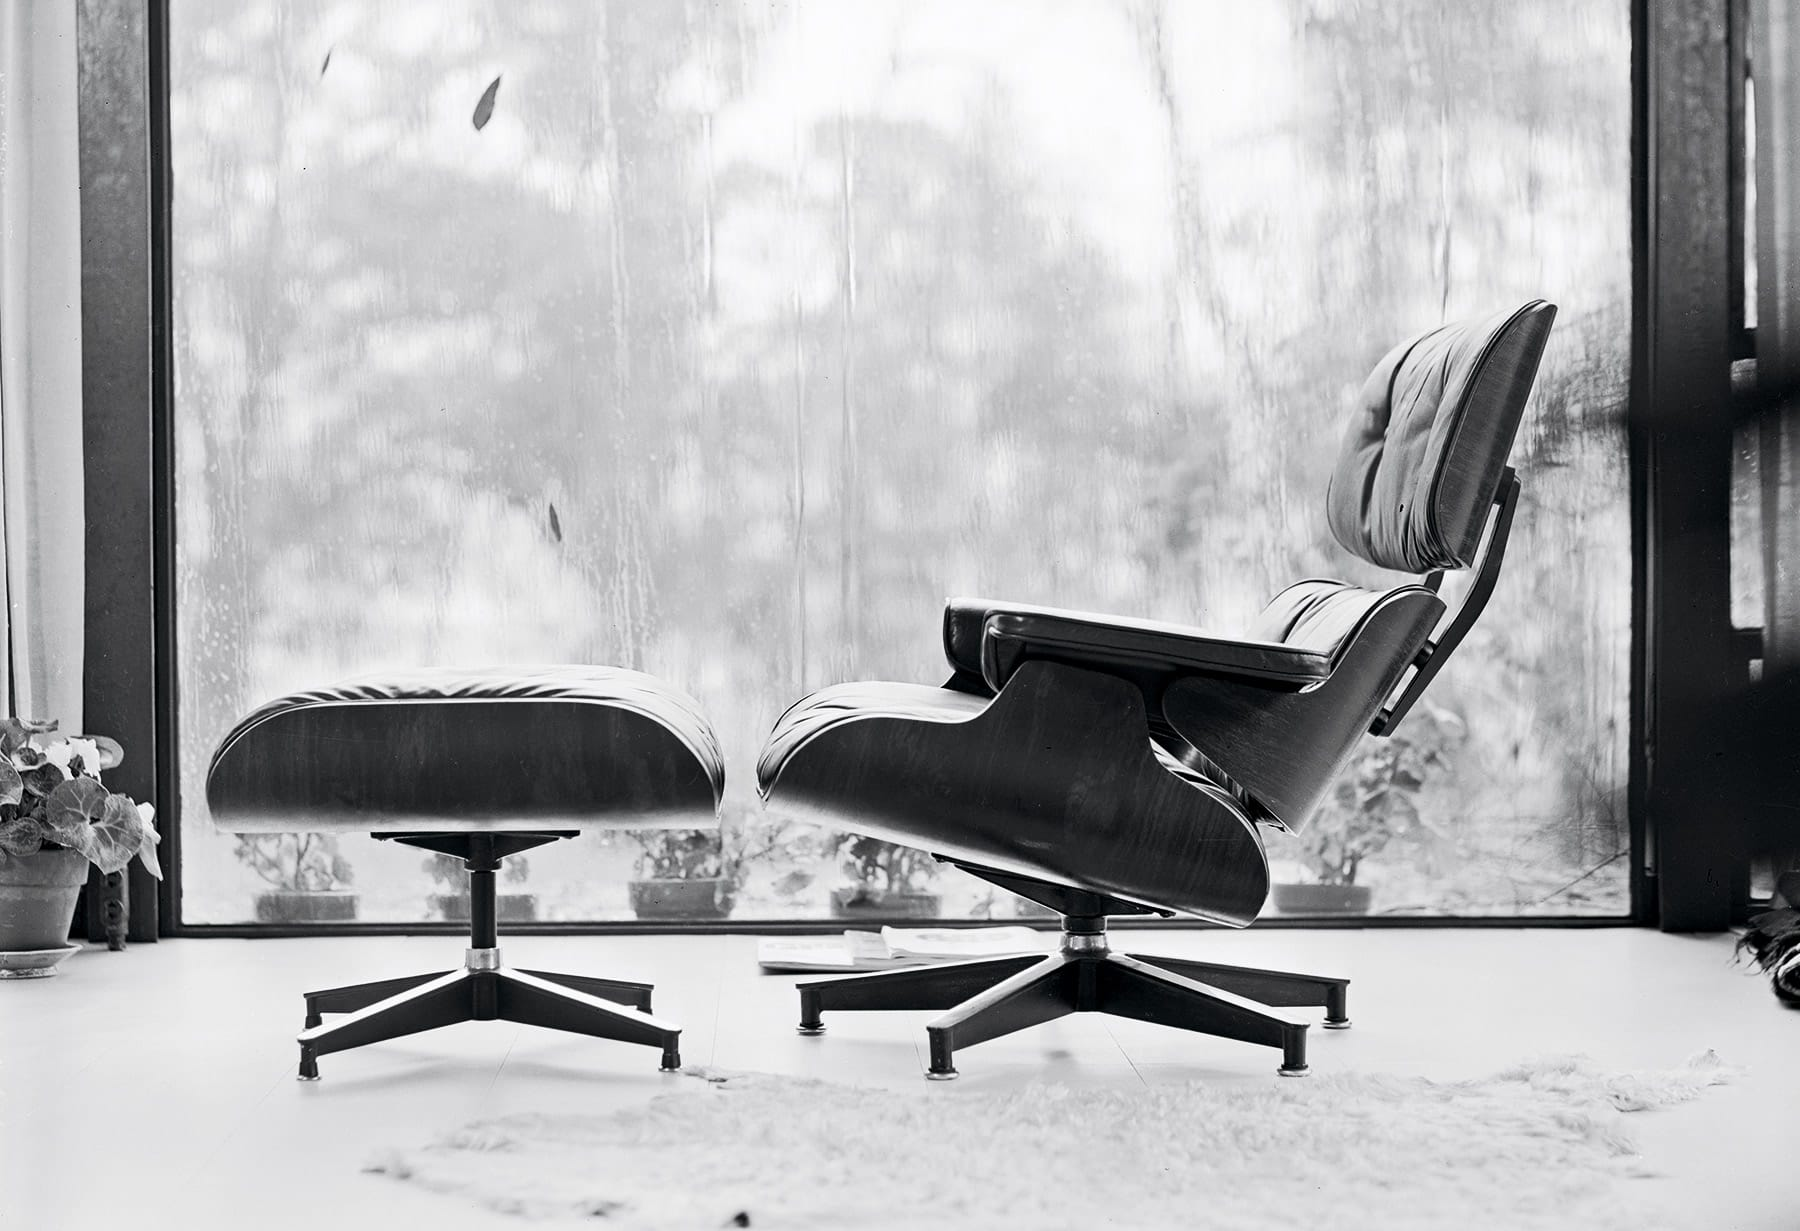 Vintage Photo of an Eames lounge chair and ottoman